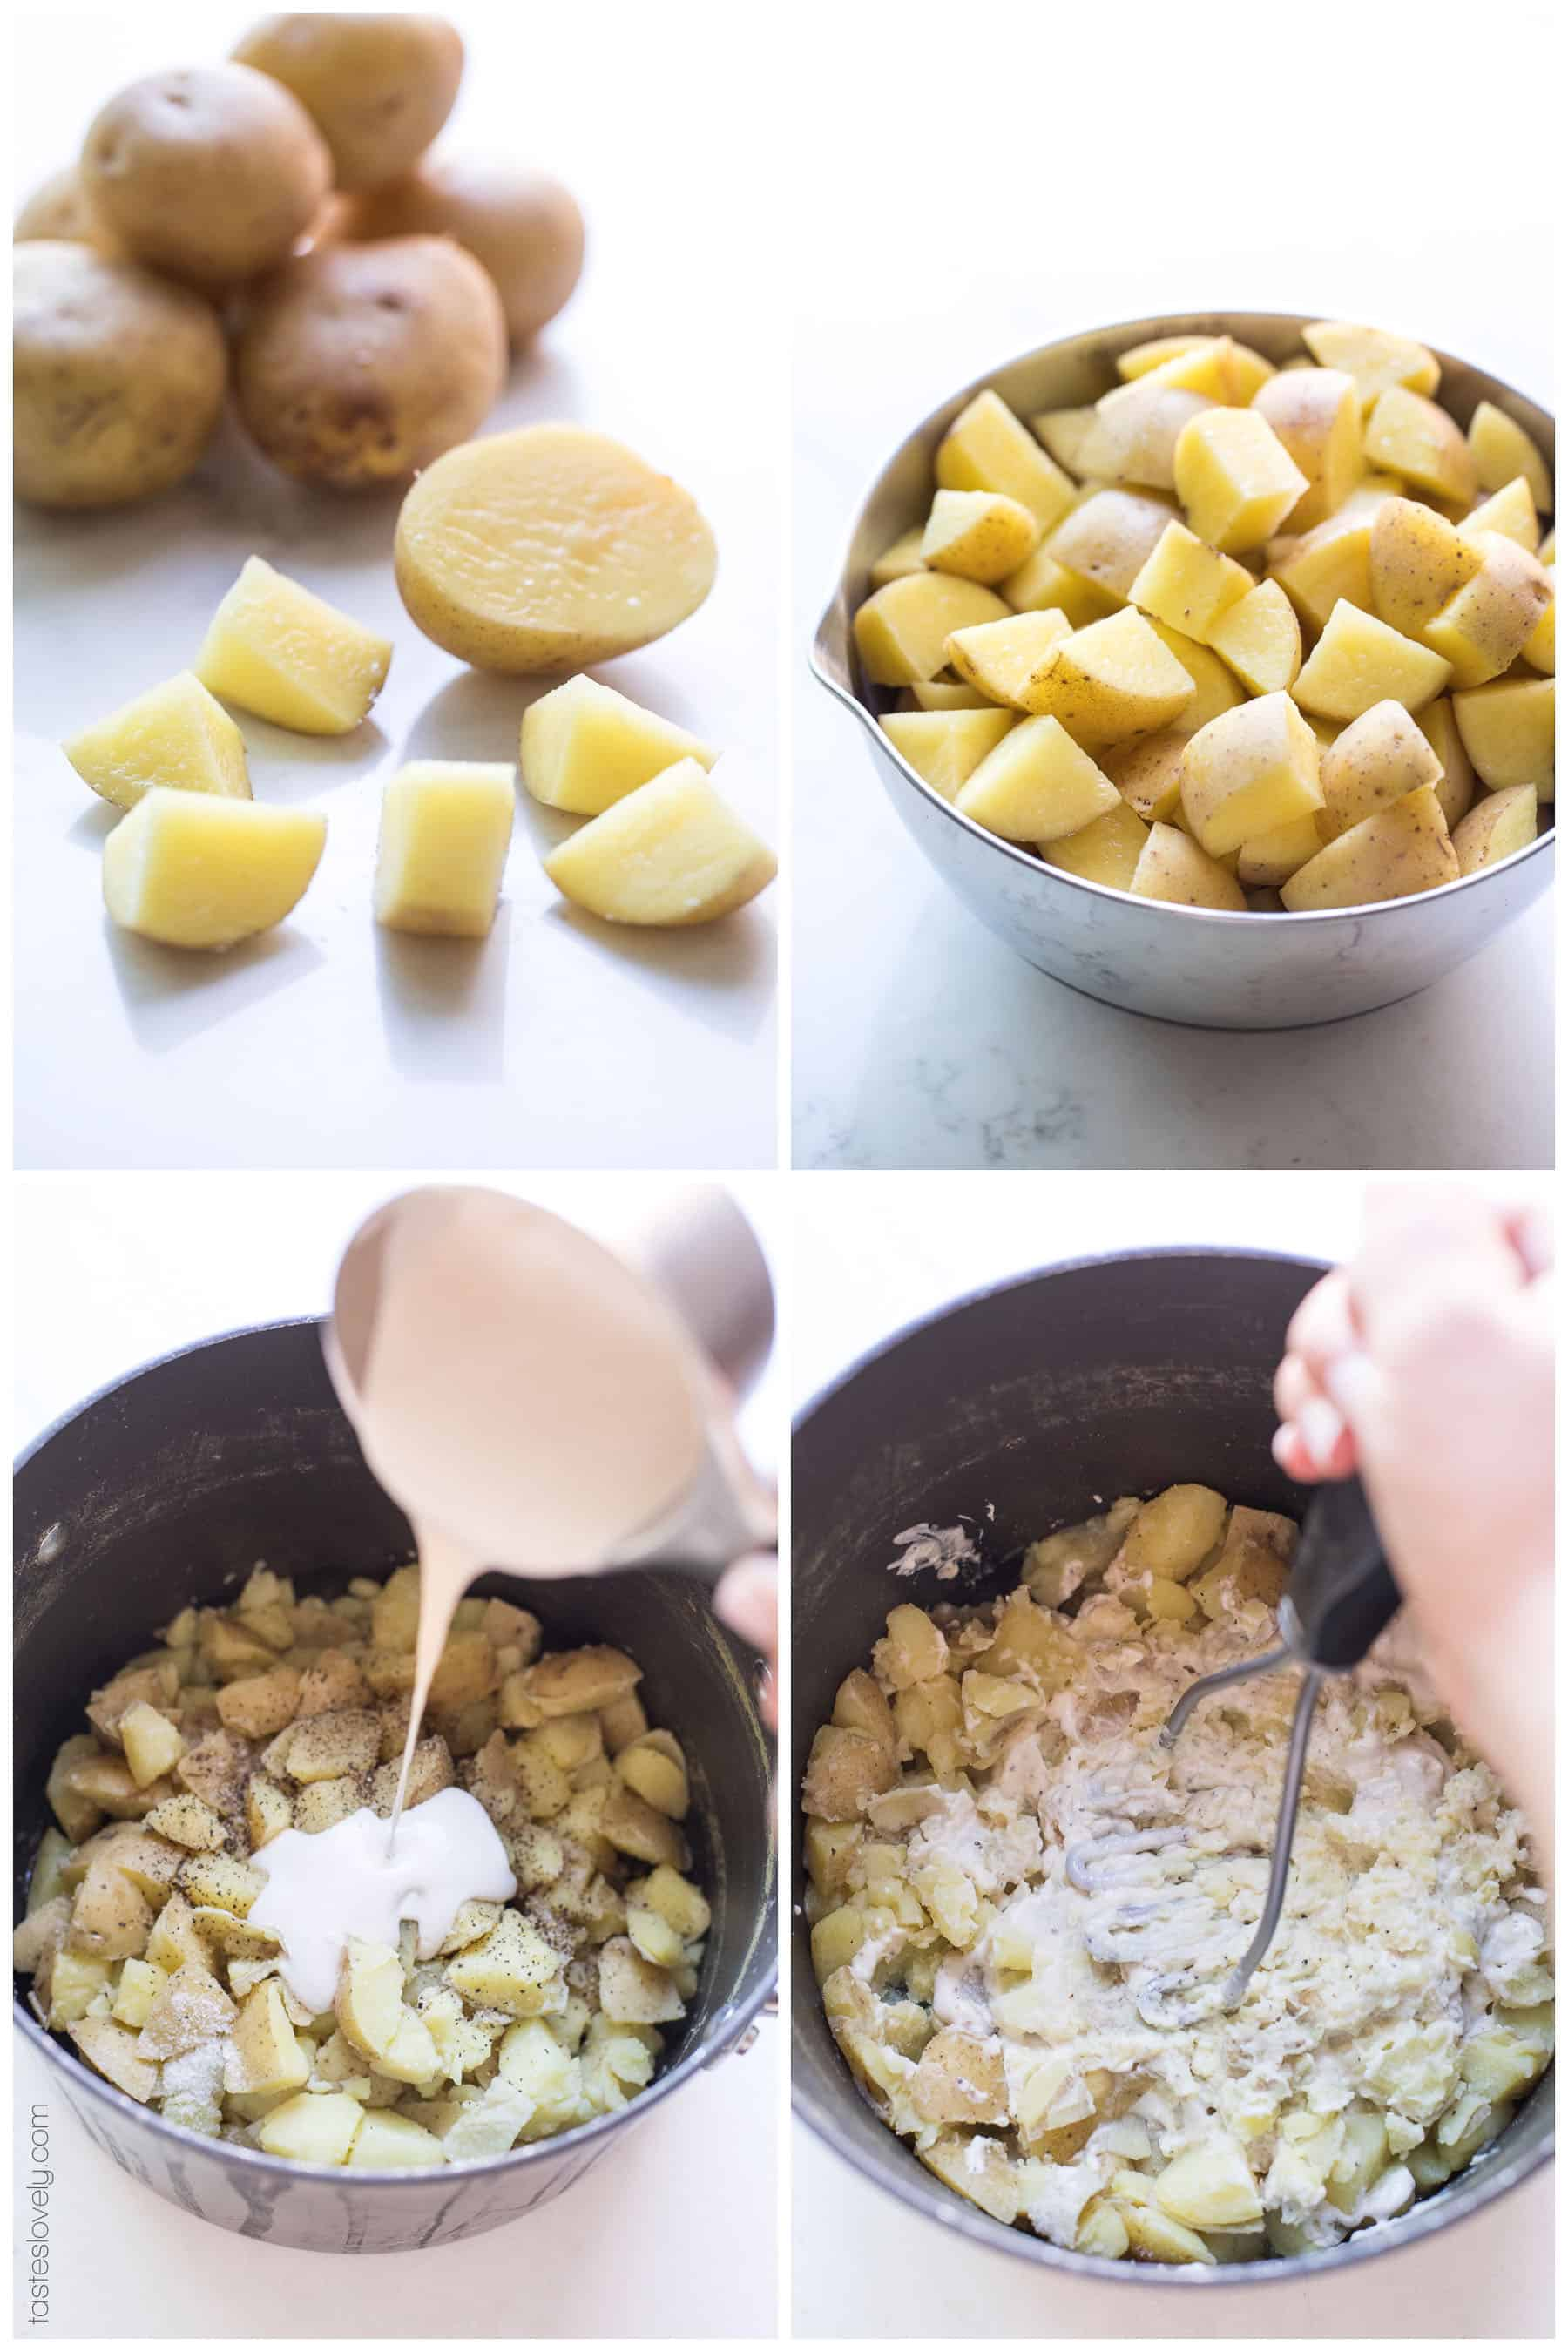 steps of making mashed potatoes